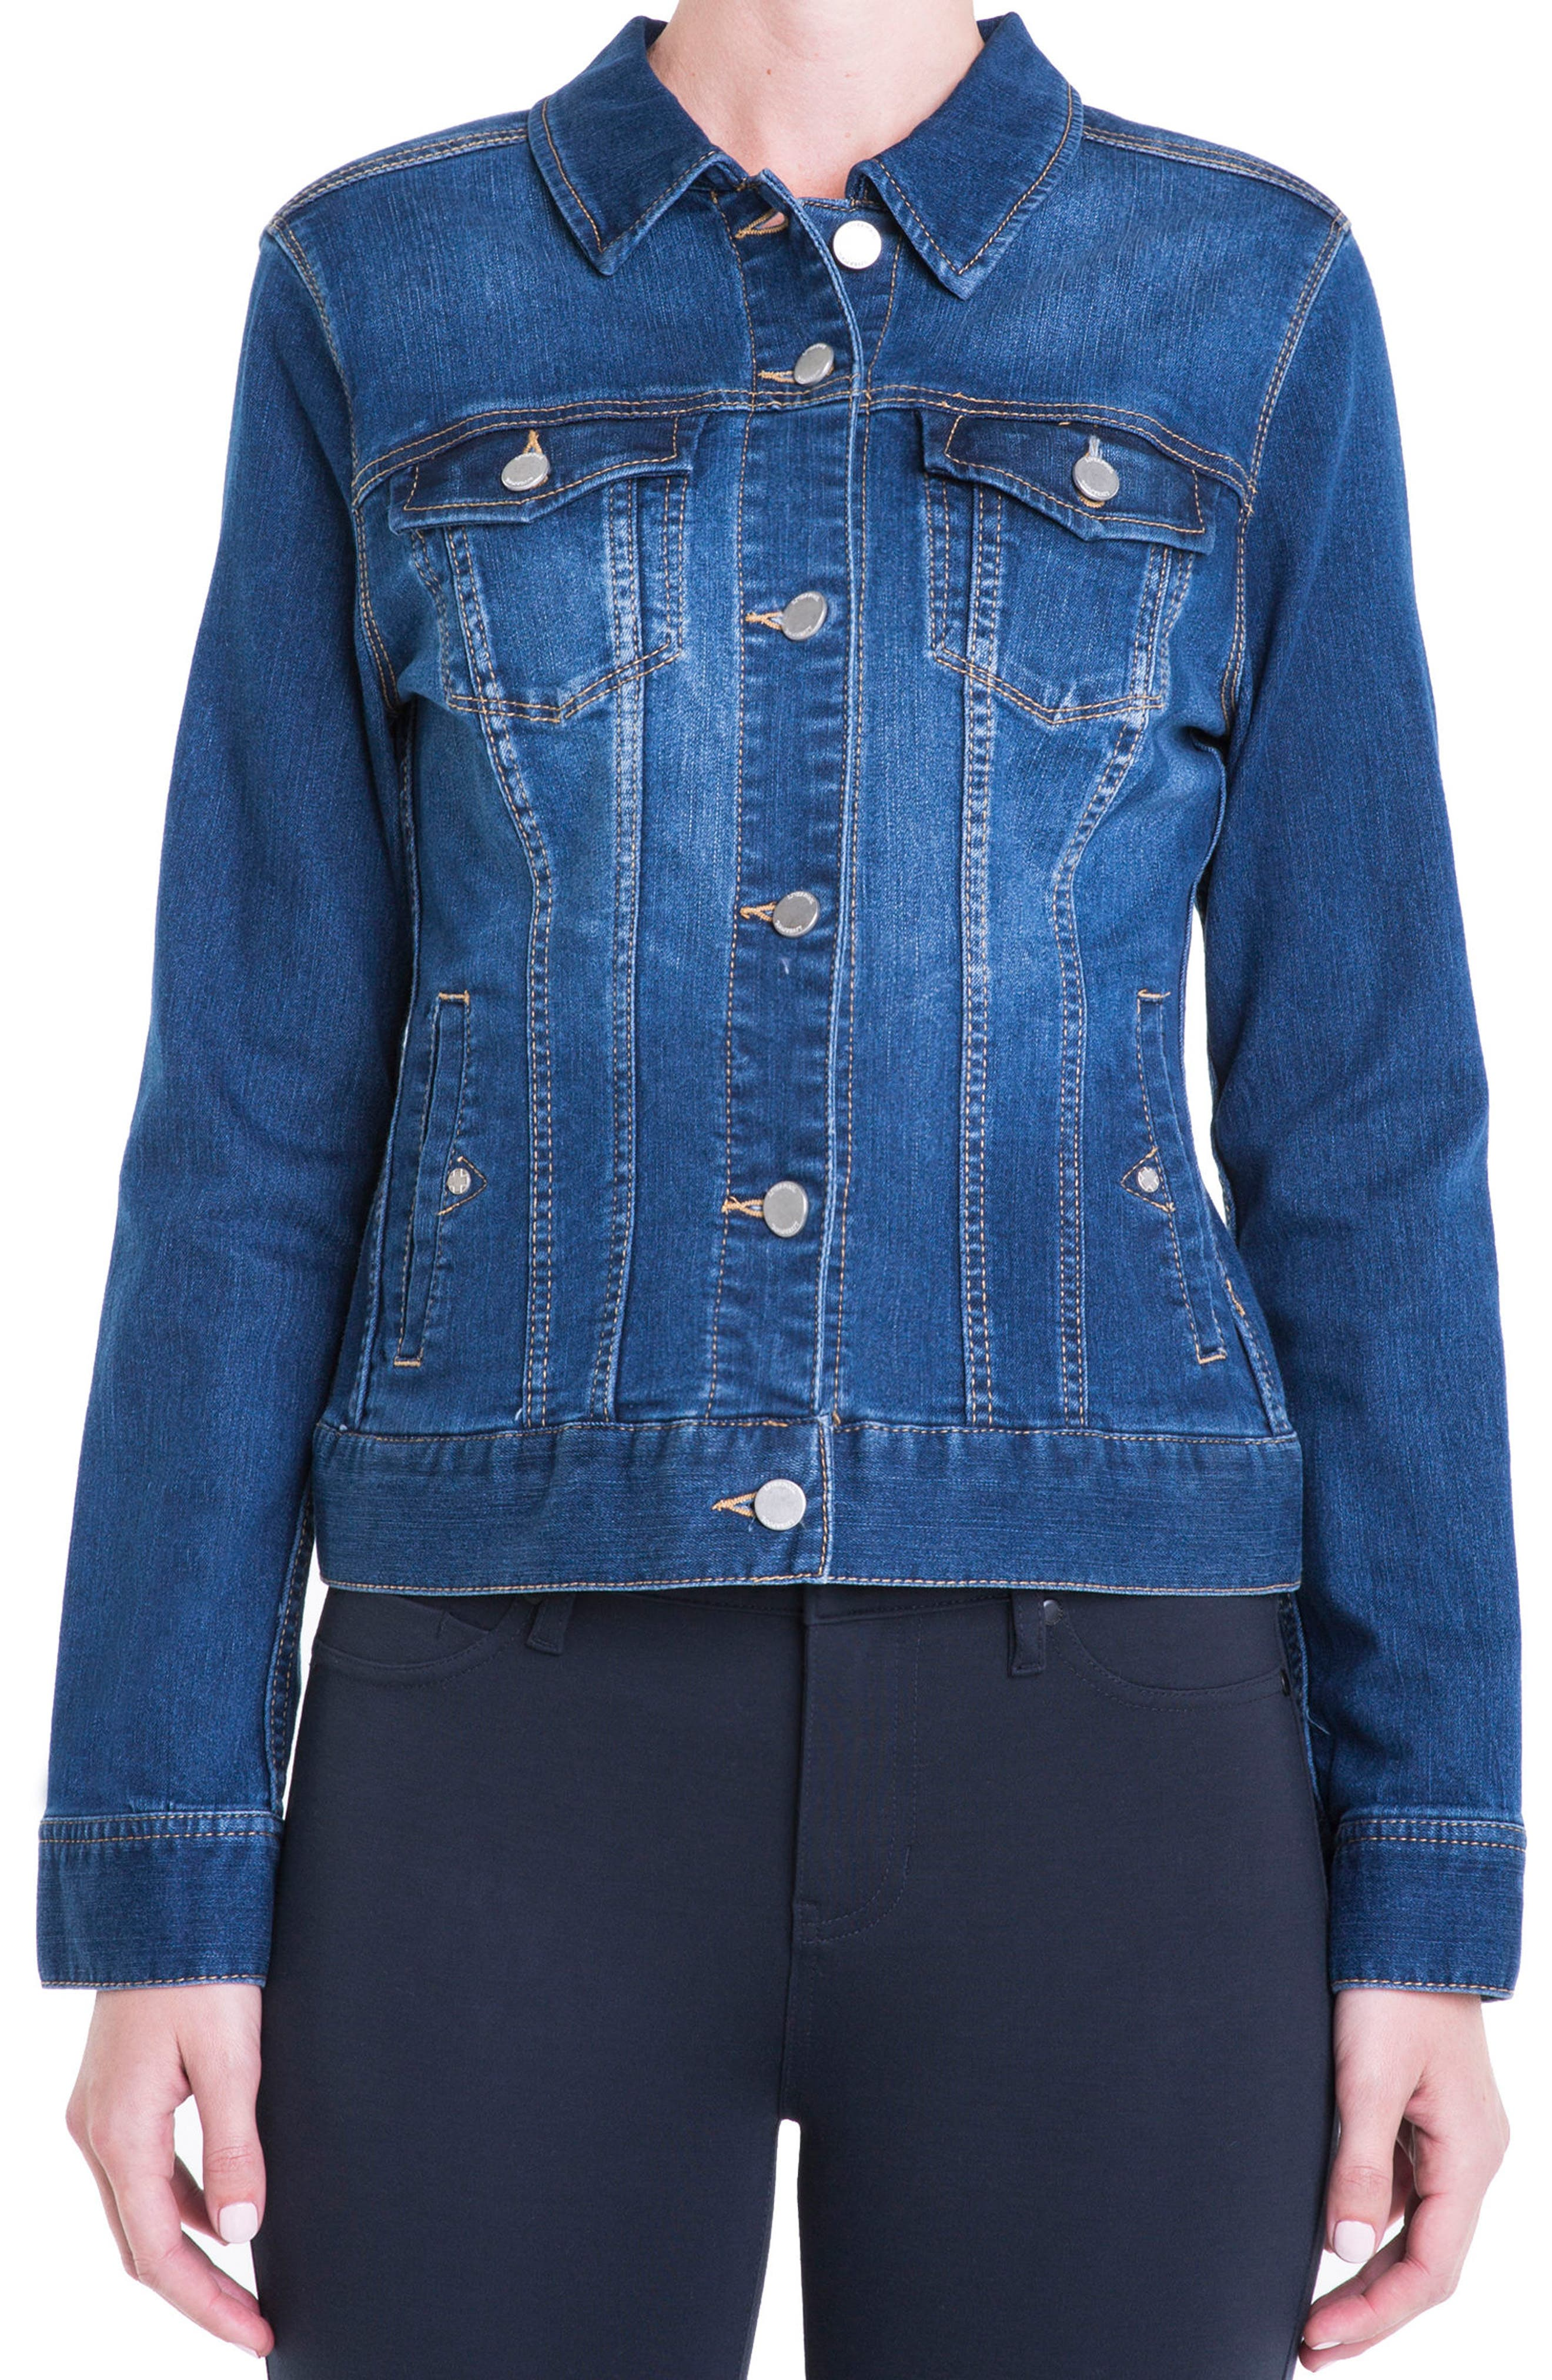 Liverpool Jeans Company Denim Jacket (Petite)